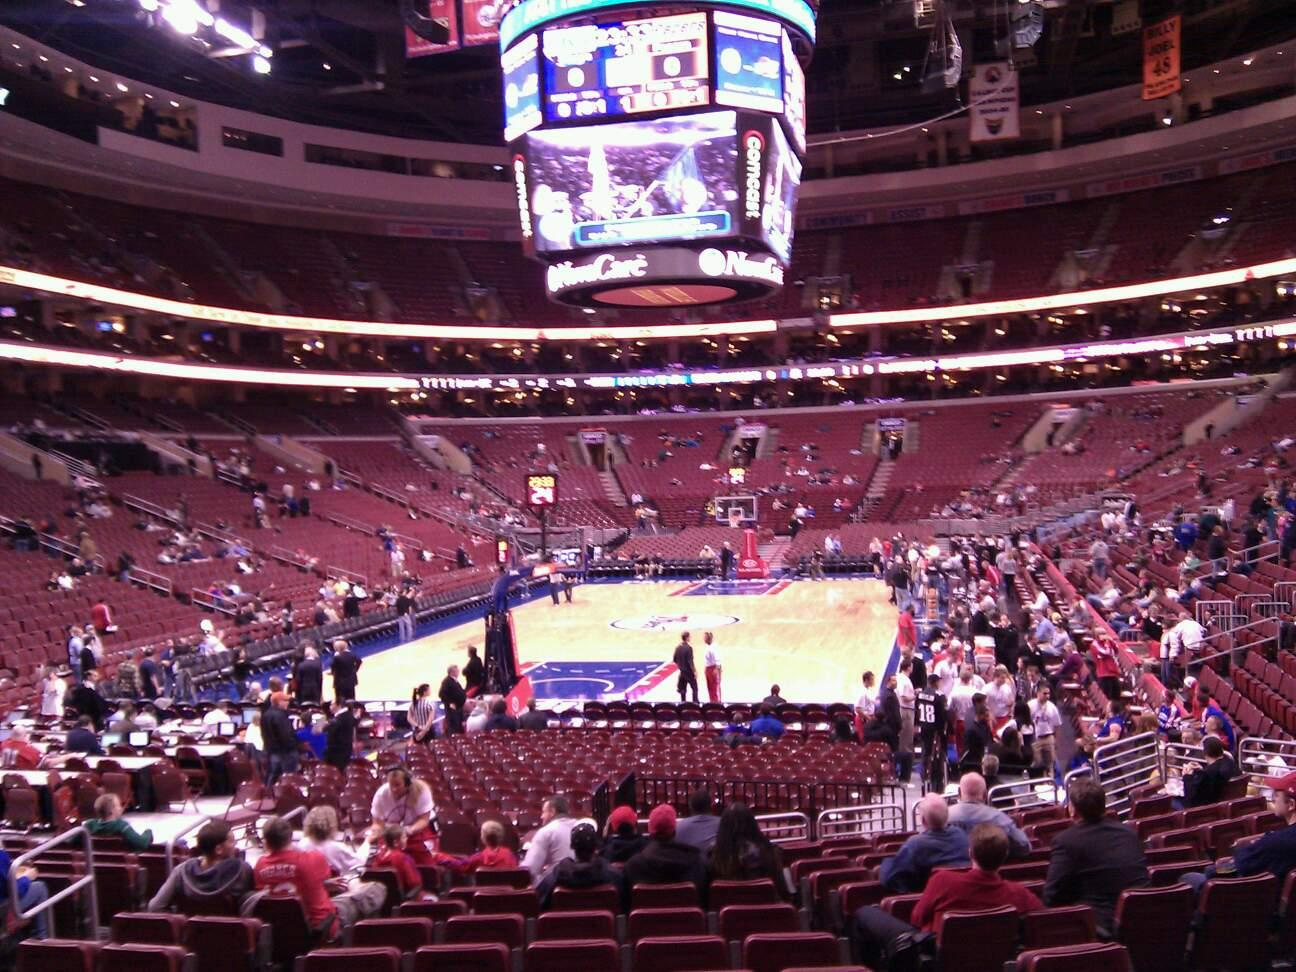 Wells Fargo Center Section 120 Row 15 Seat 8